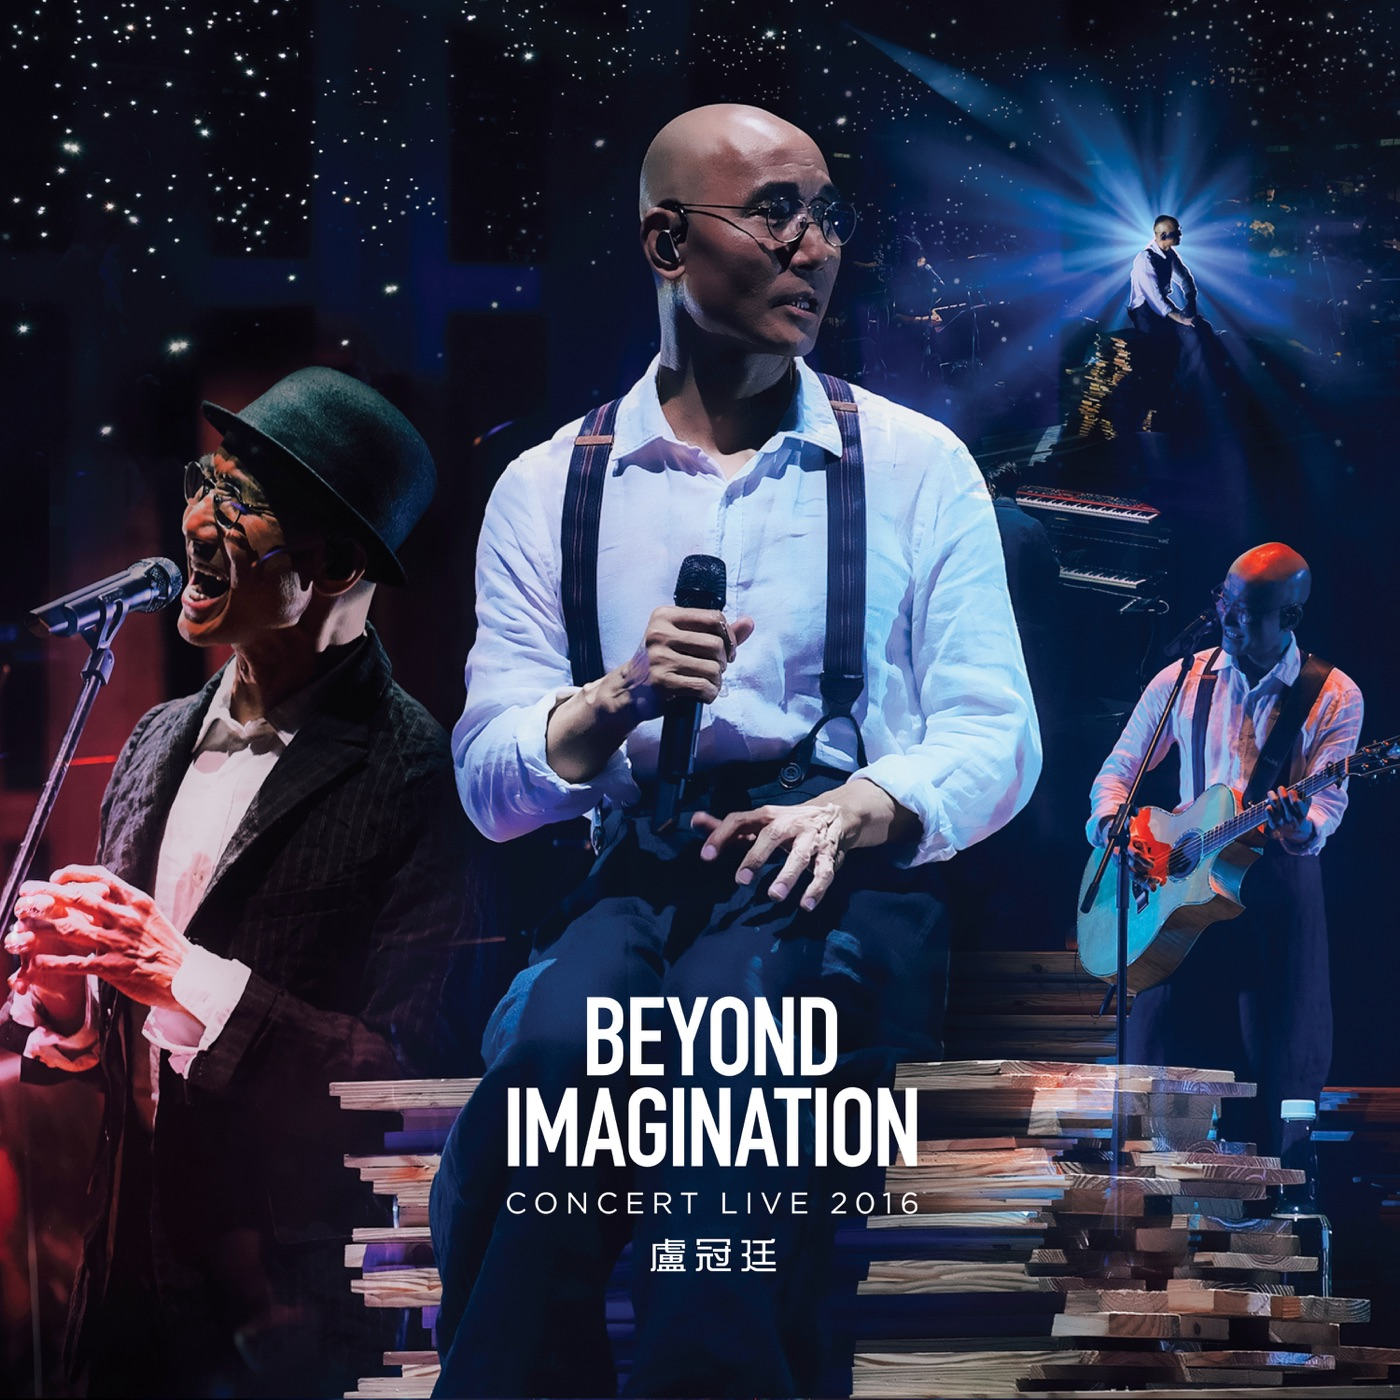 卢冠廷 - Beyond Imagination Concert Live 2016